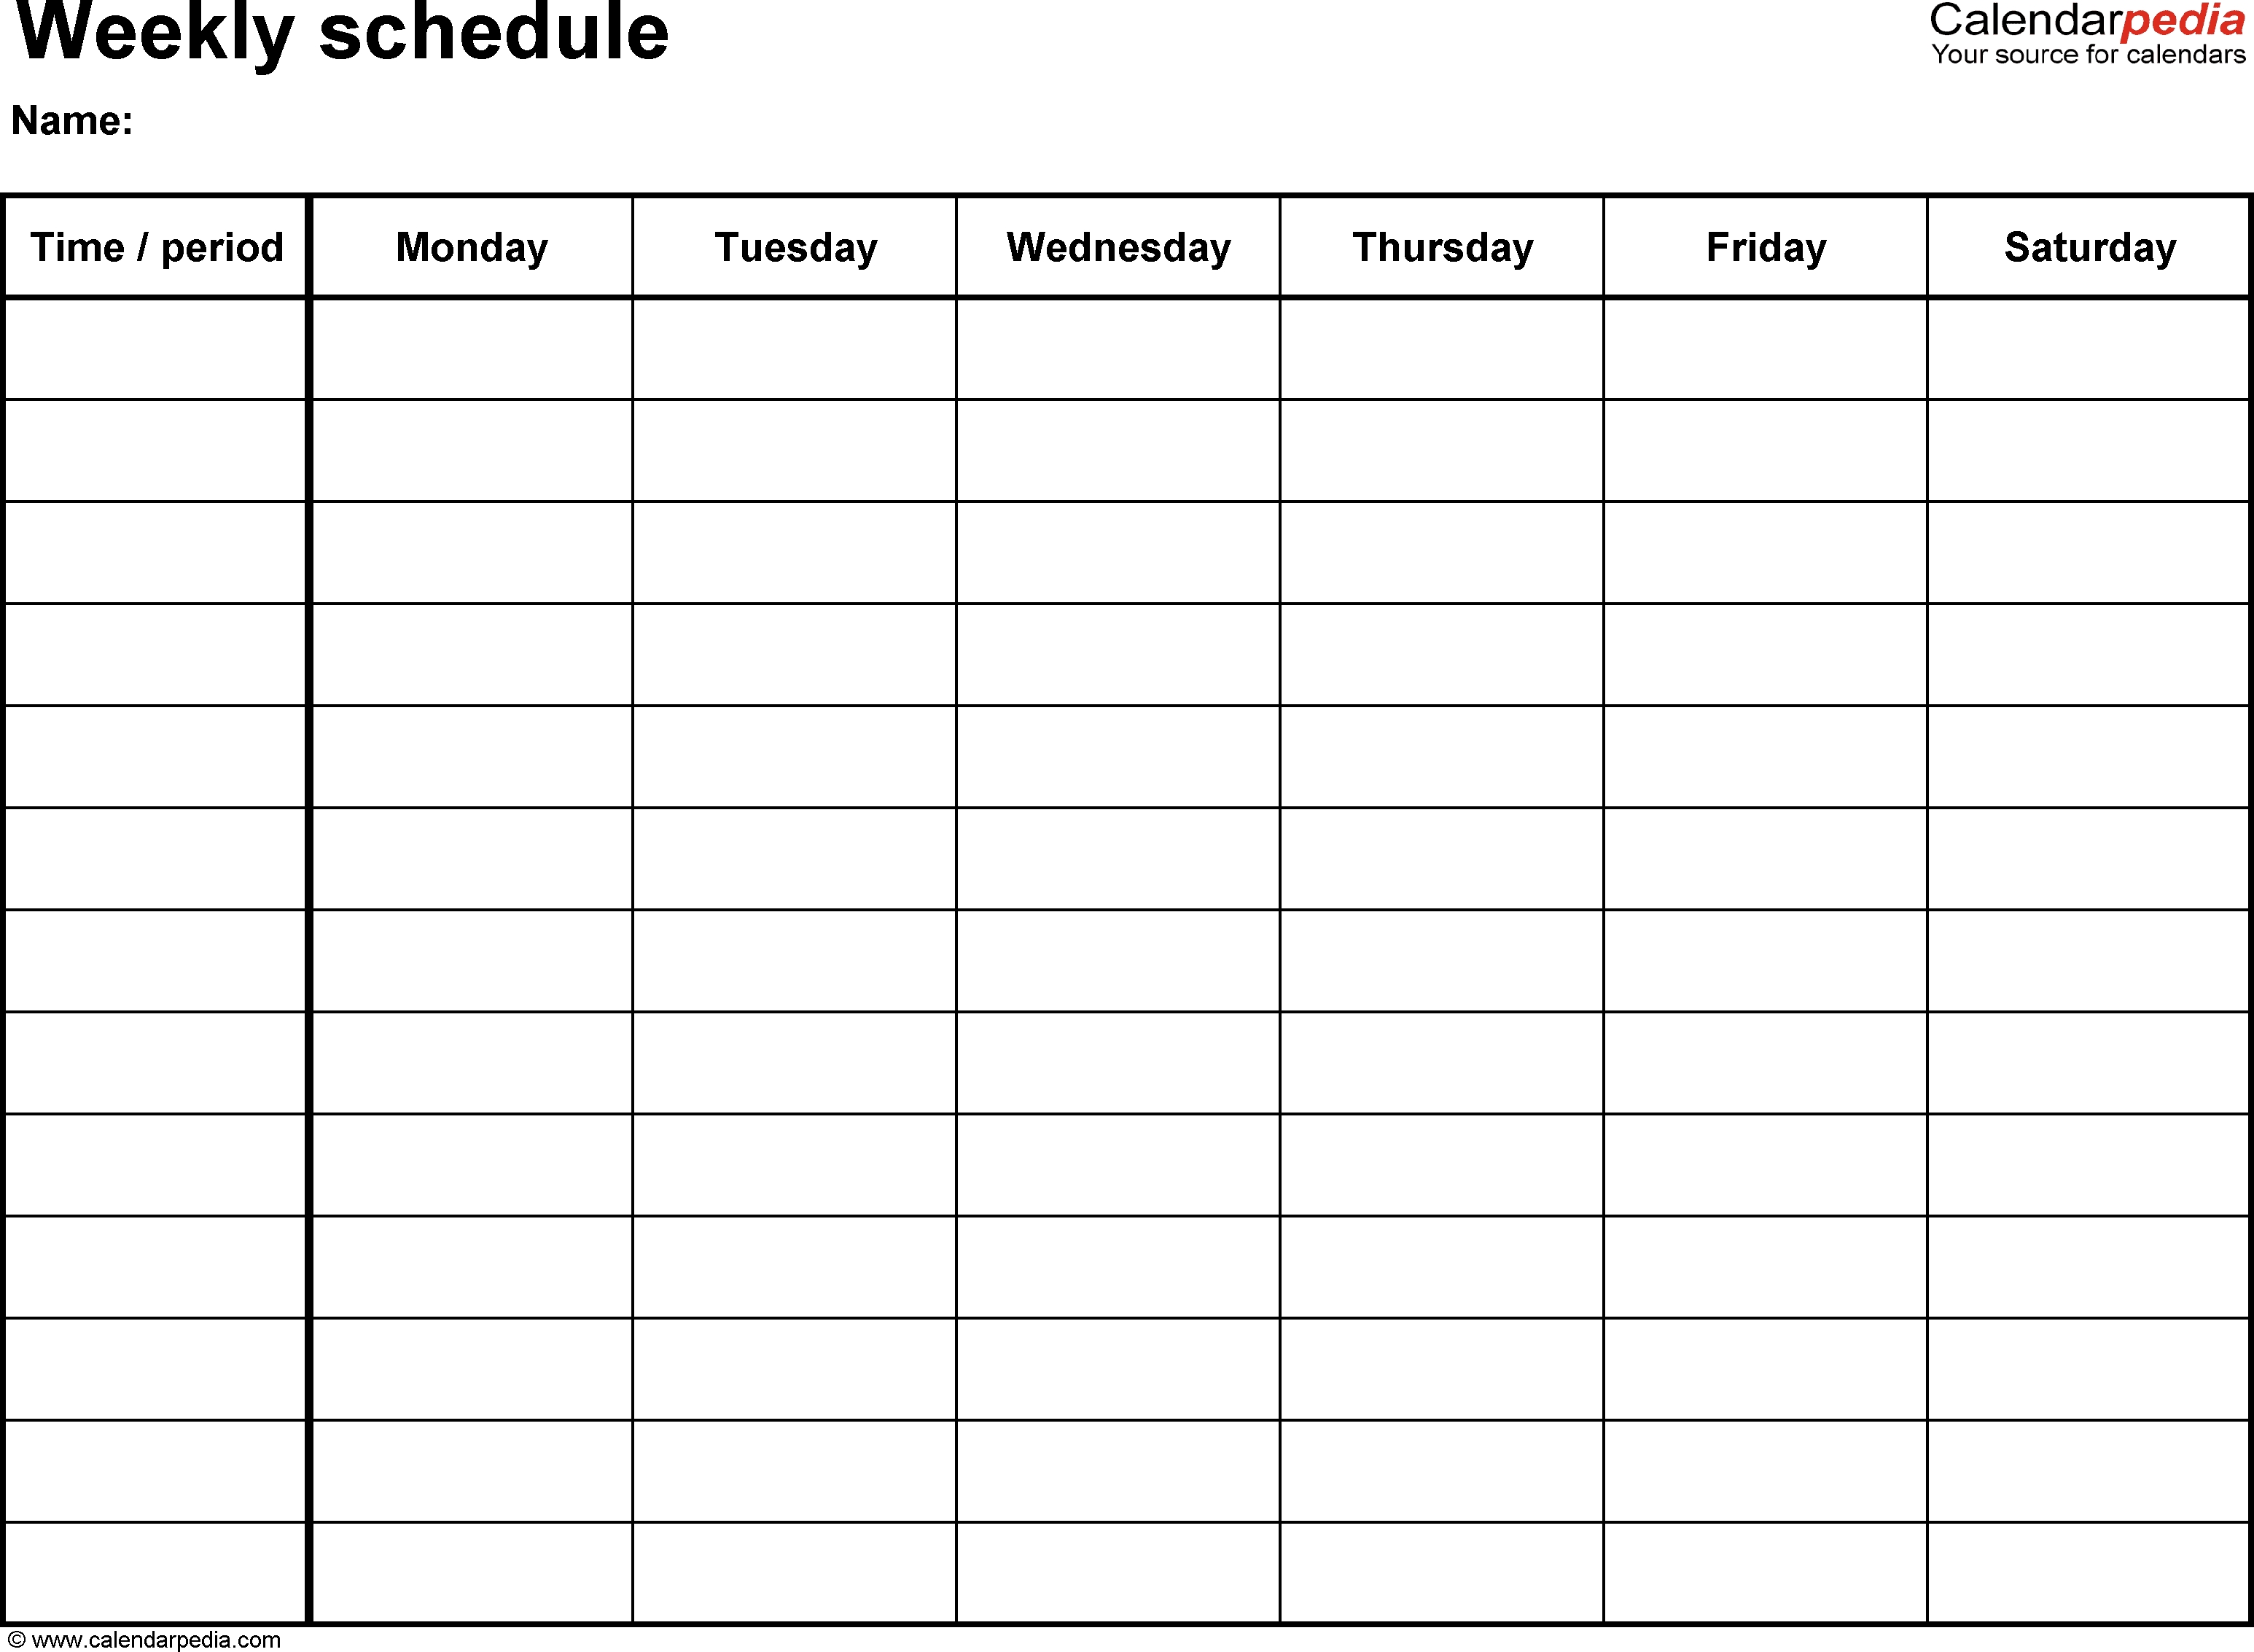 Free Weekly Schedule Templates For Excel - 18 Templates  6 Weeks Holiday Timeline Template